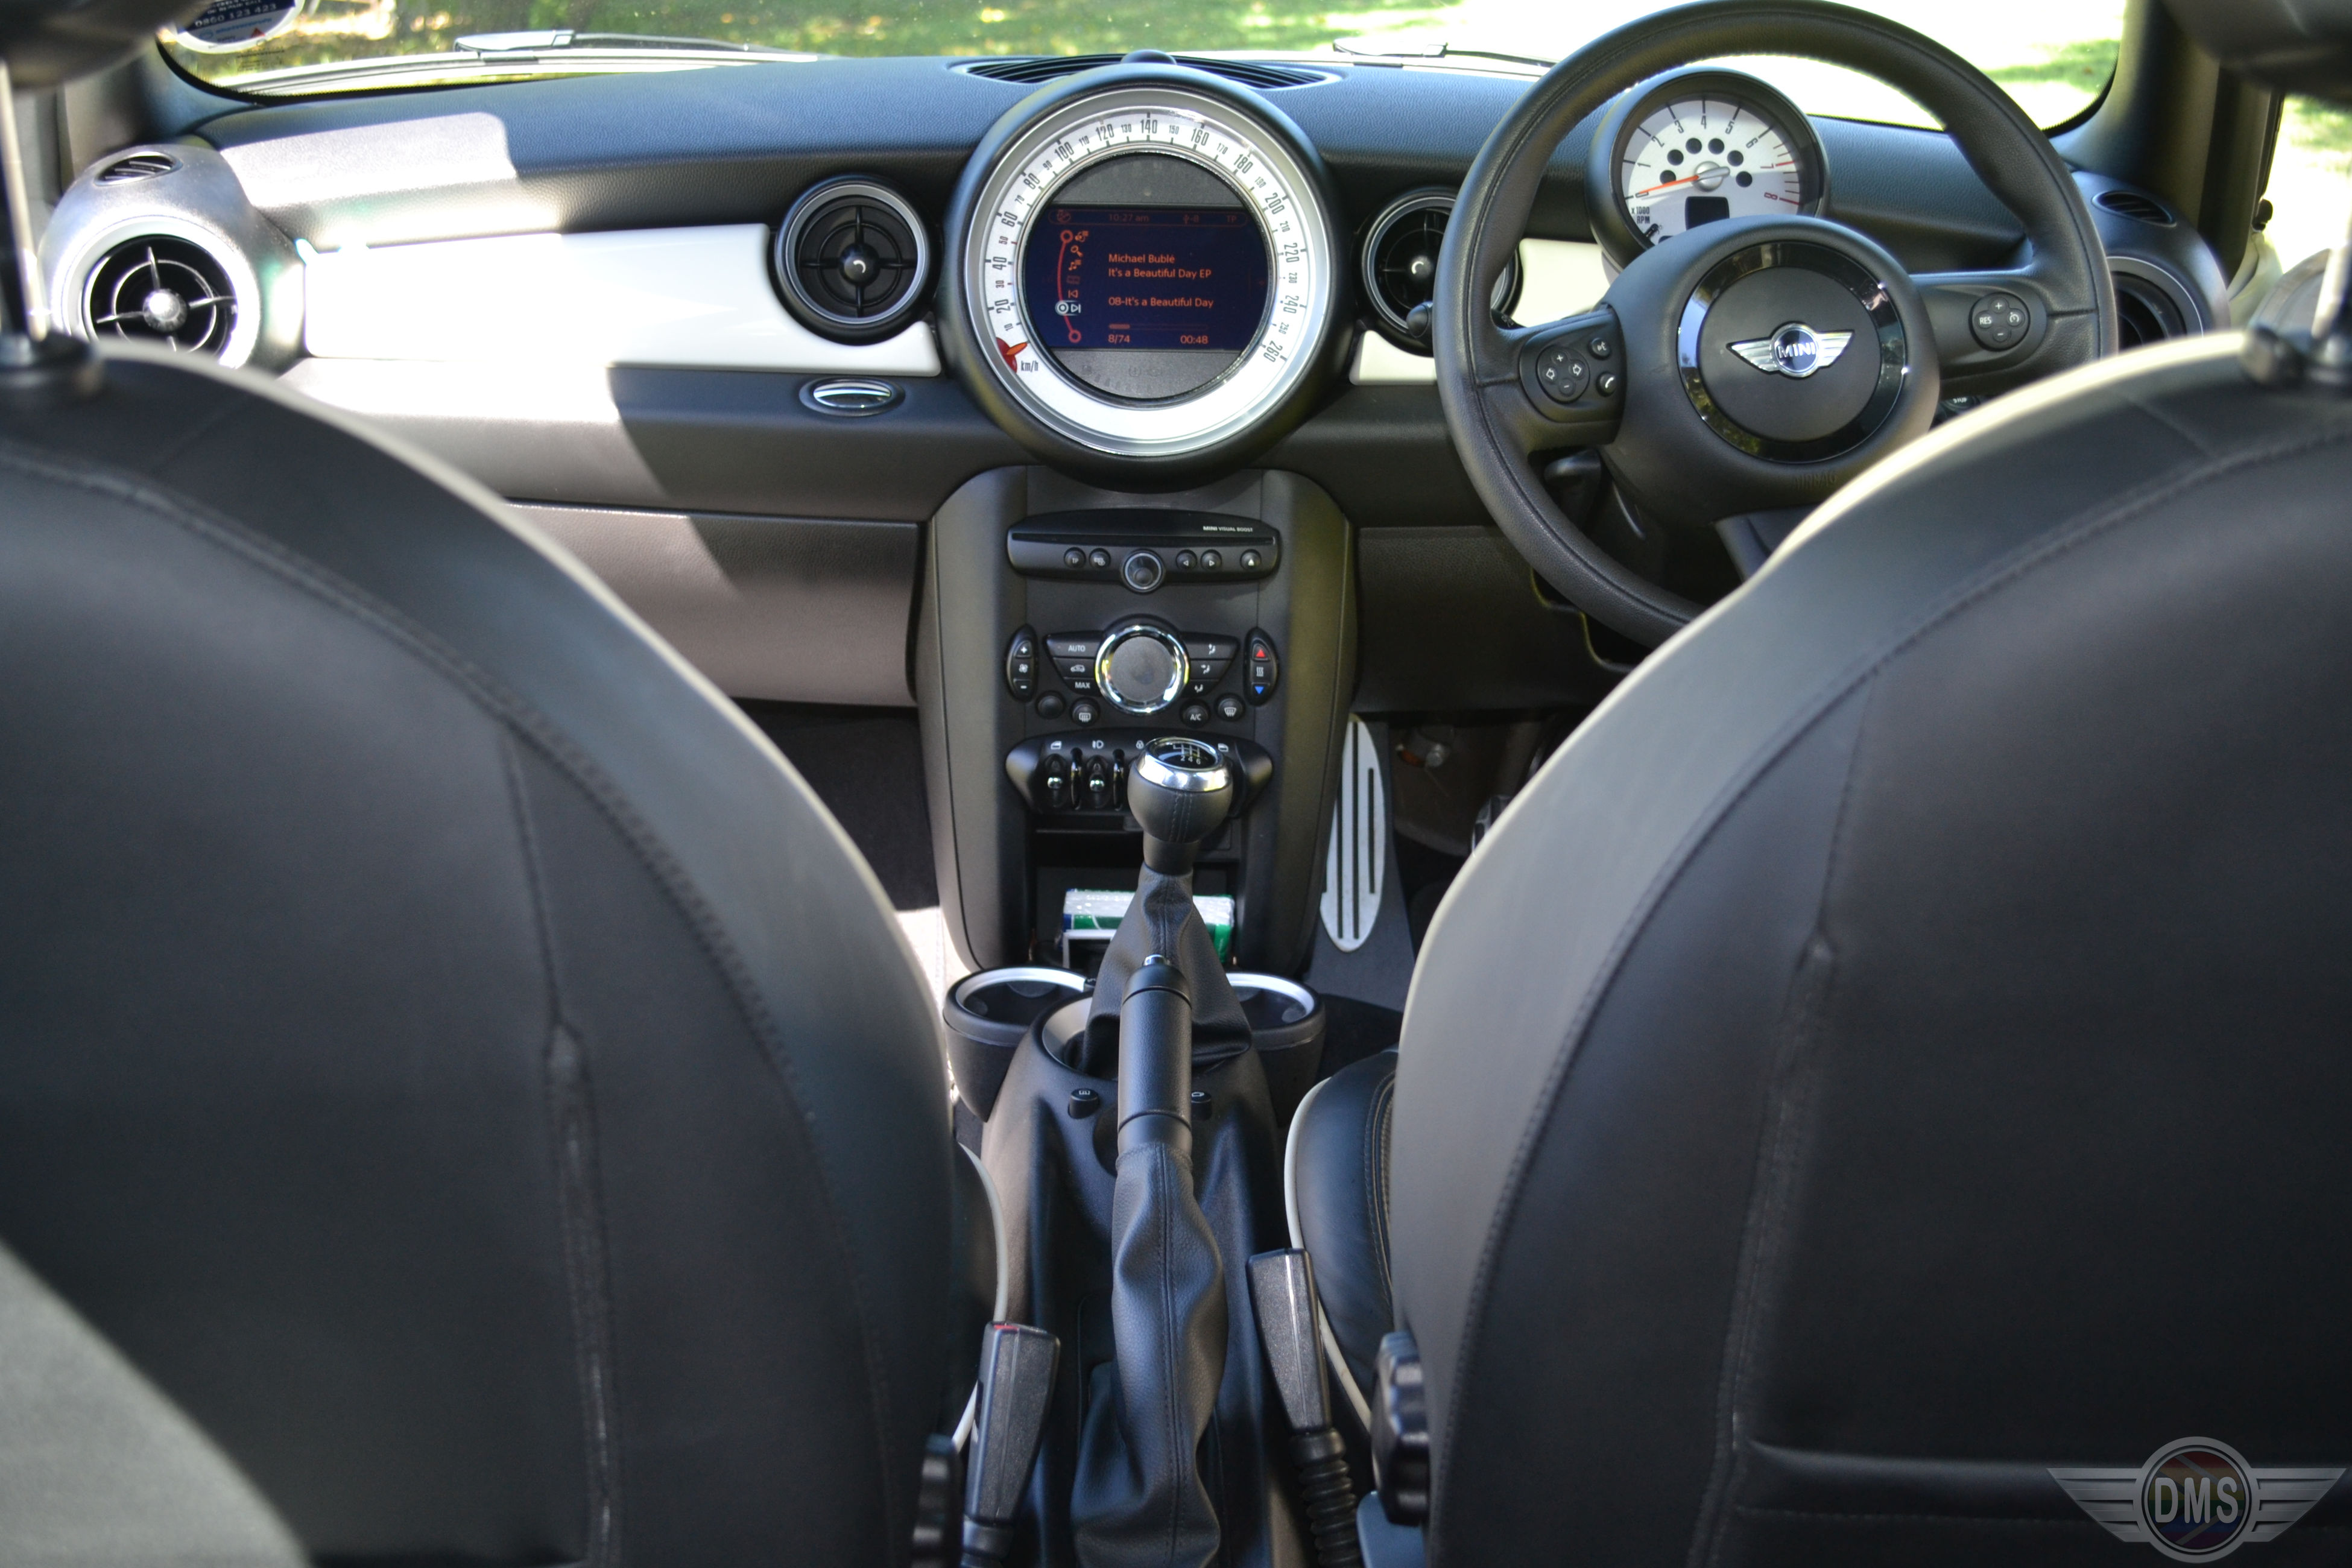 transportation, car, mode of transport, dashboard, control, vehicle interior, speedometer, gearshift, technology, car interior, control panel, gauge, steering wheel, cockpit, day, no people